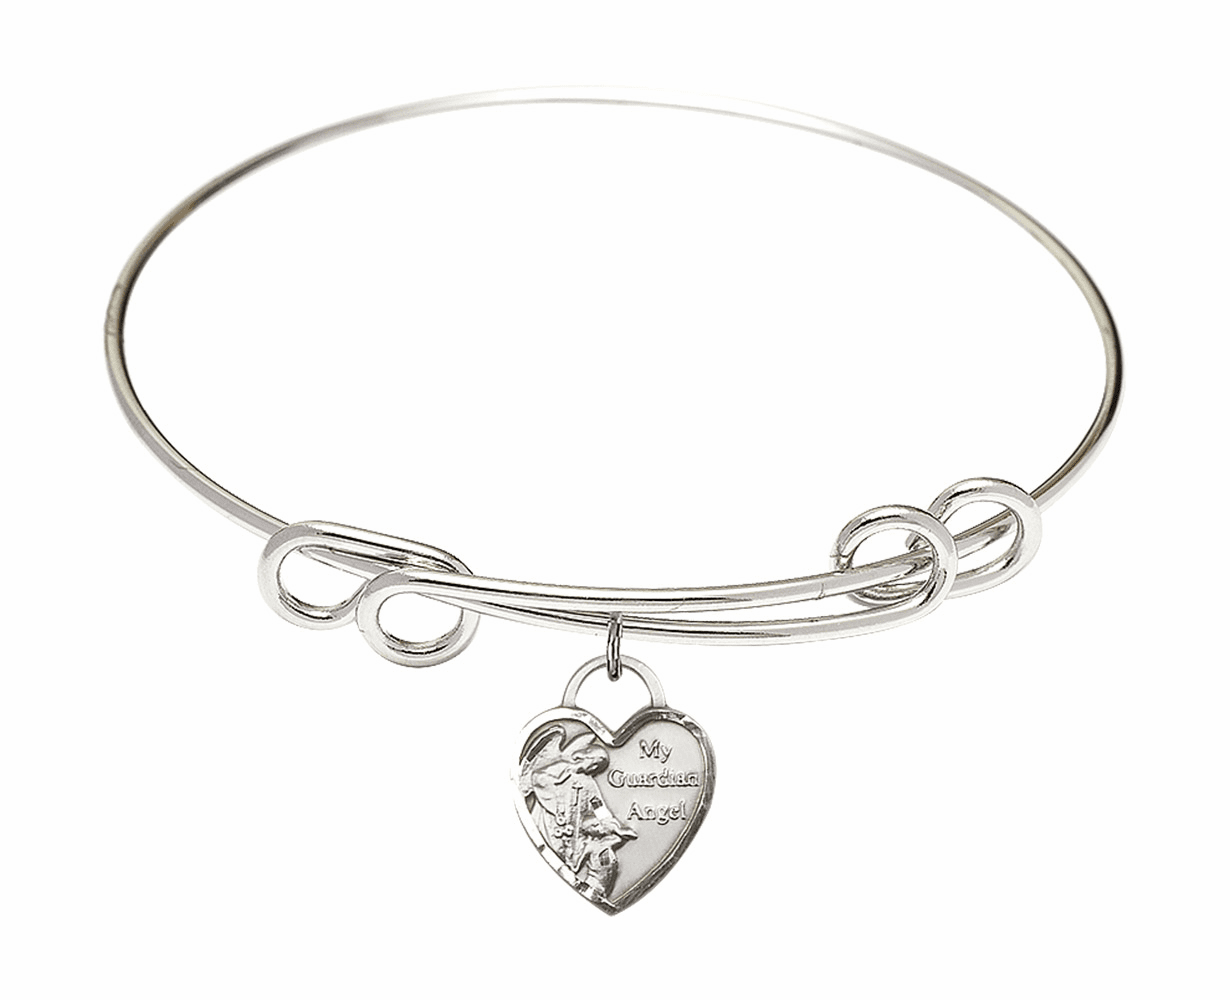 Round Double Loop Bangle Bracelet w/Heart My Guardian Angel Sterling Silver Charm by Bliss Mfg